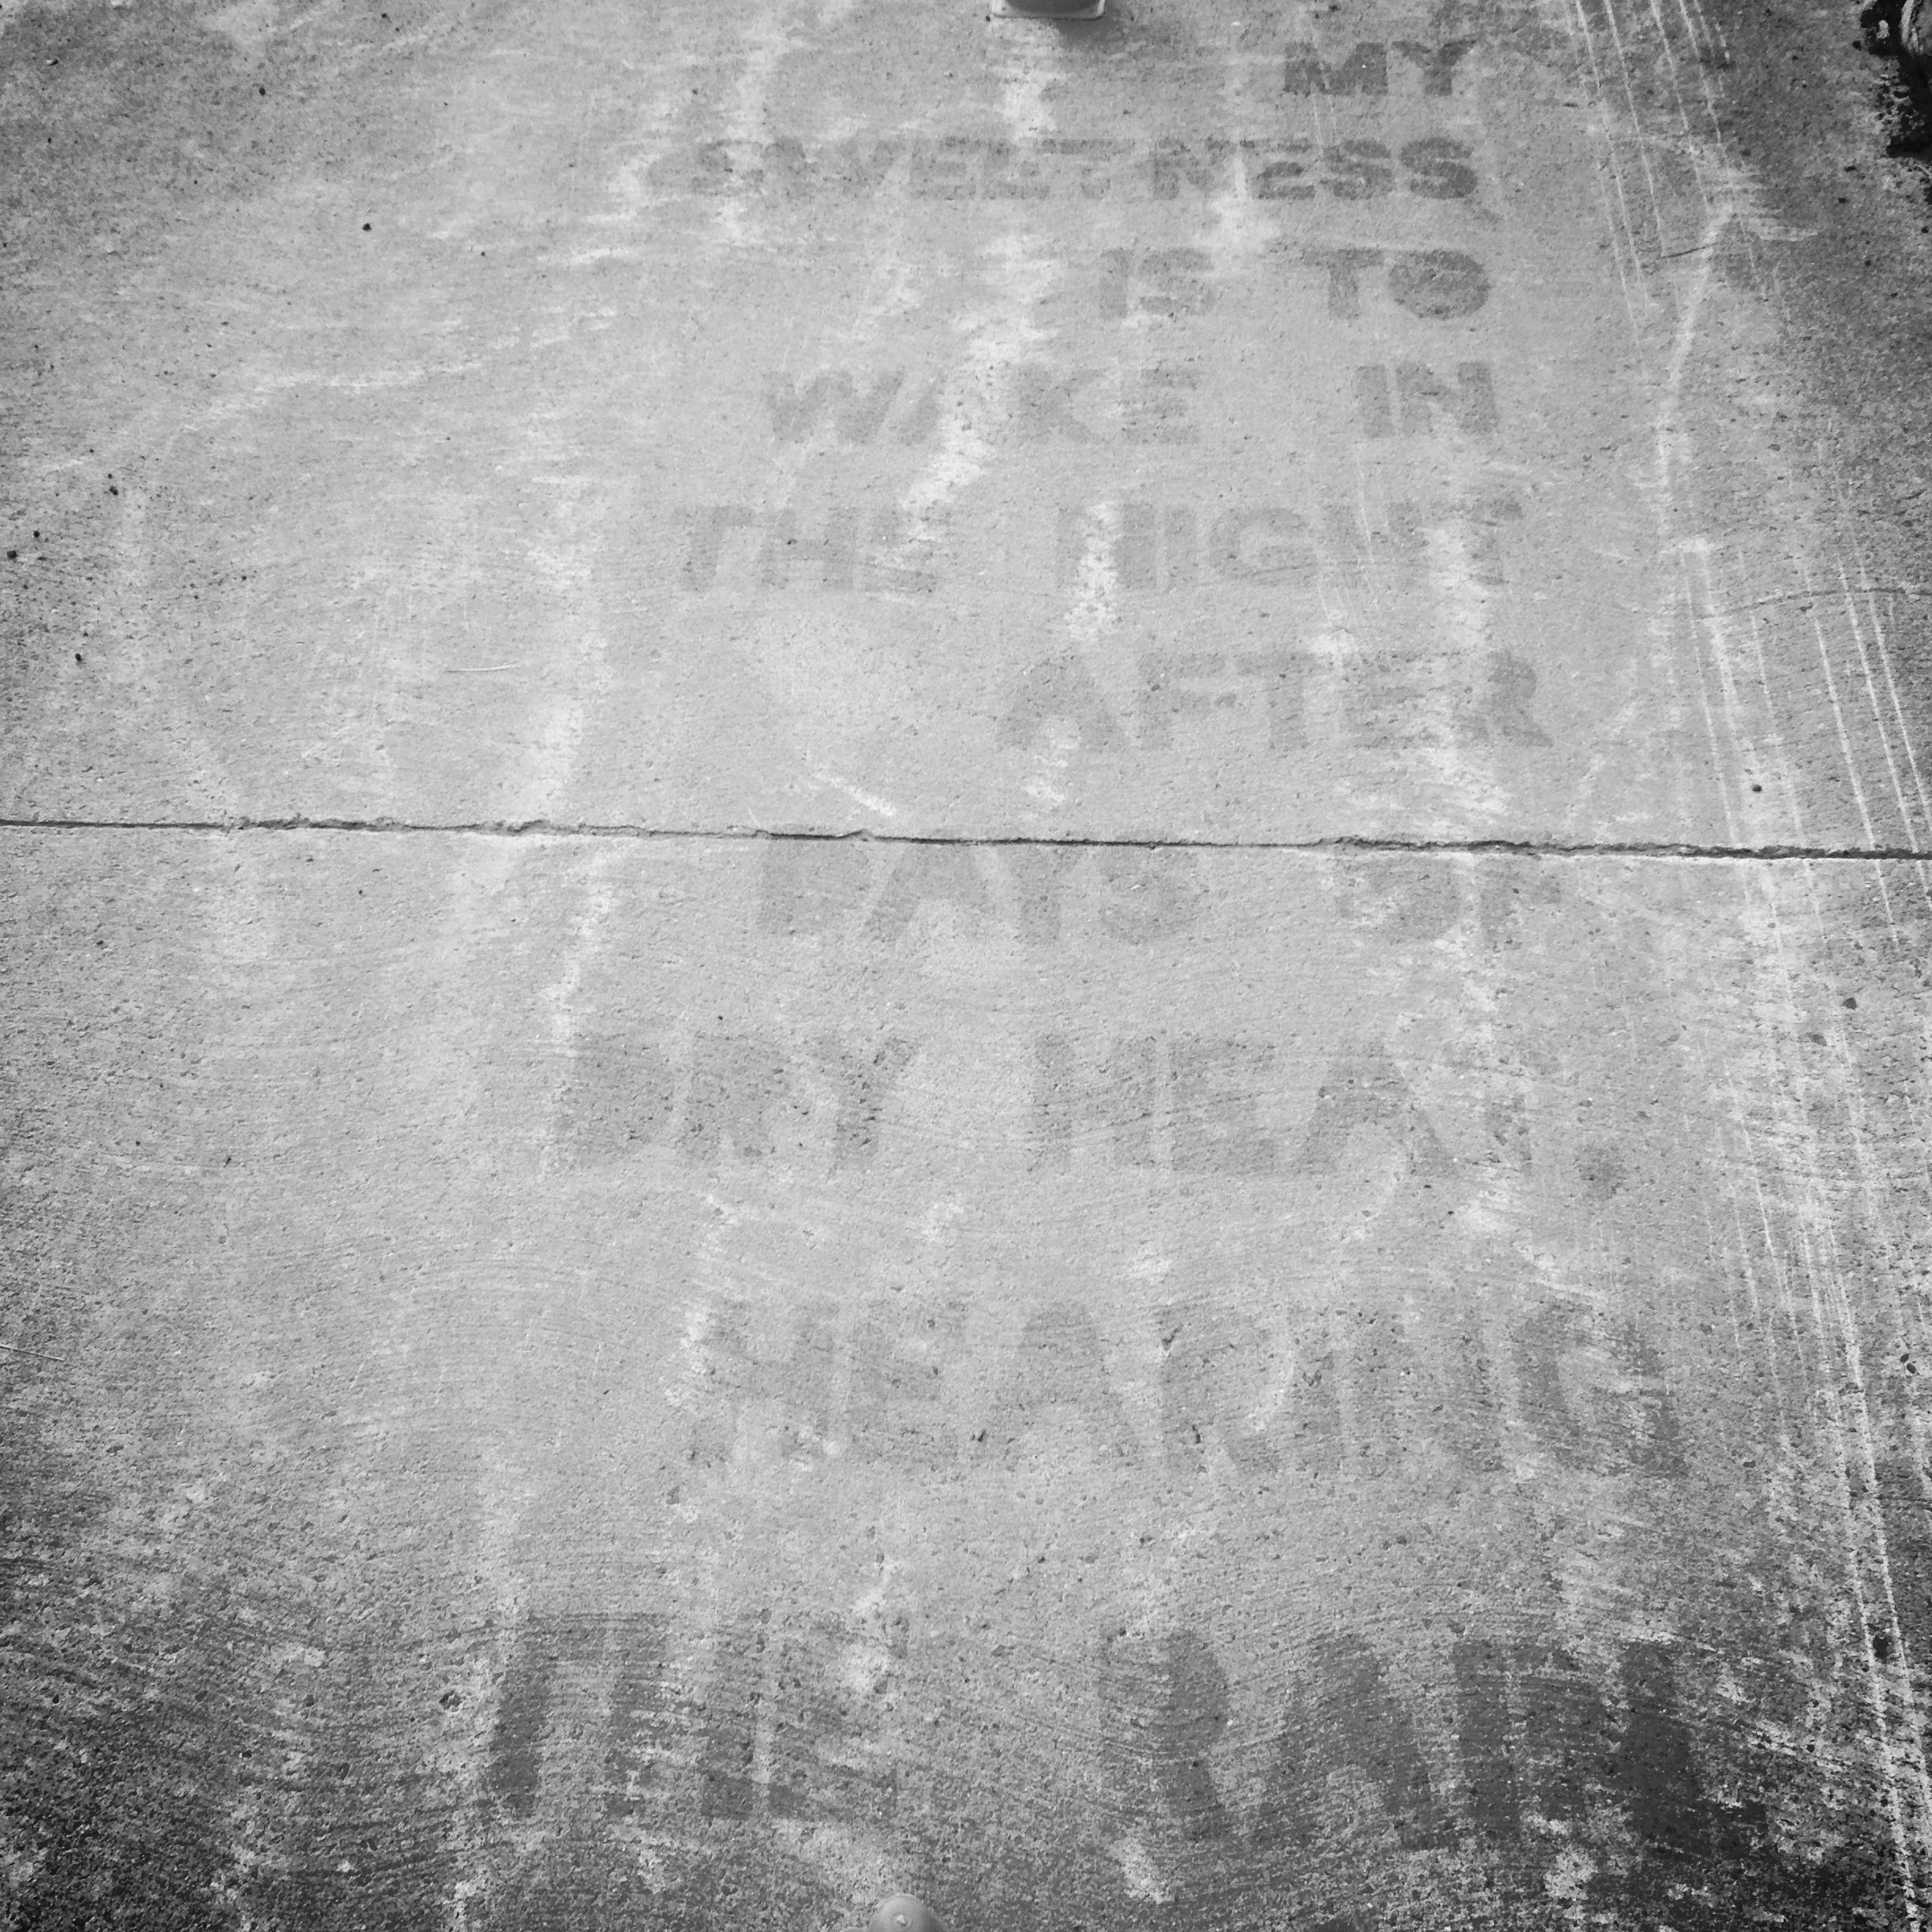 The spray is setting after stencilling. On a rainy day, it will appear the reverse (dry letters, wet ground).